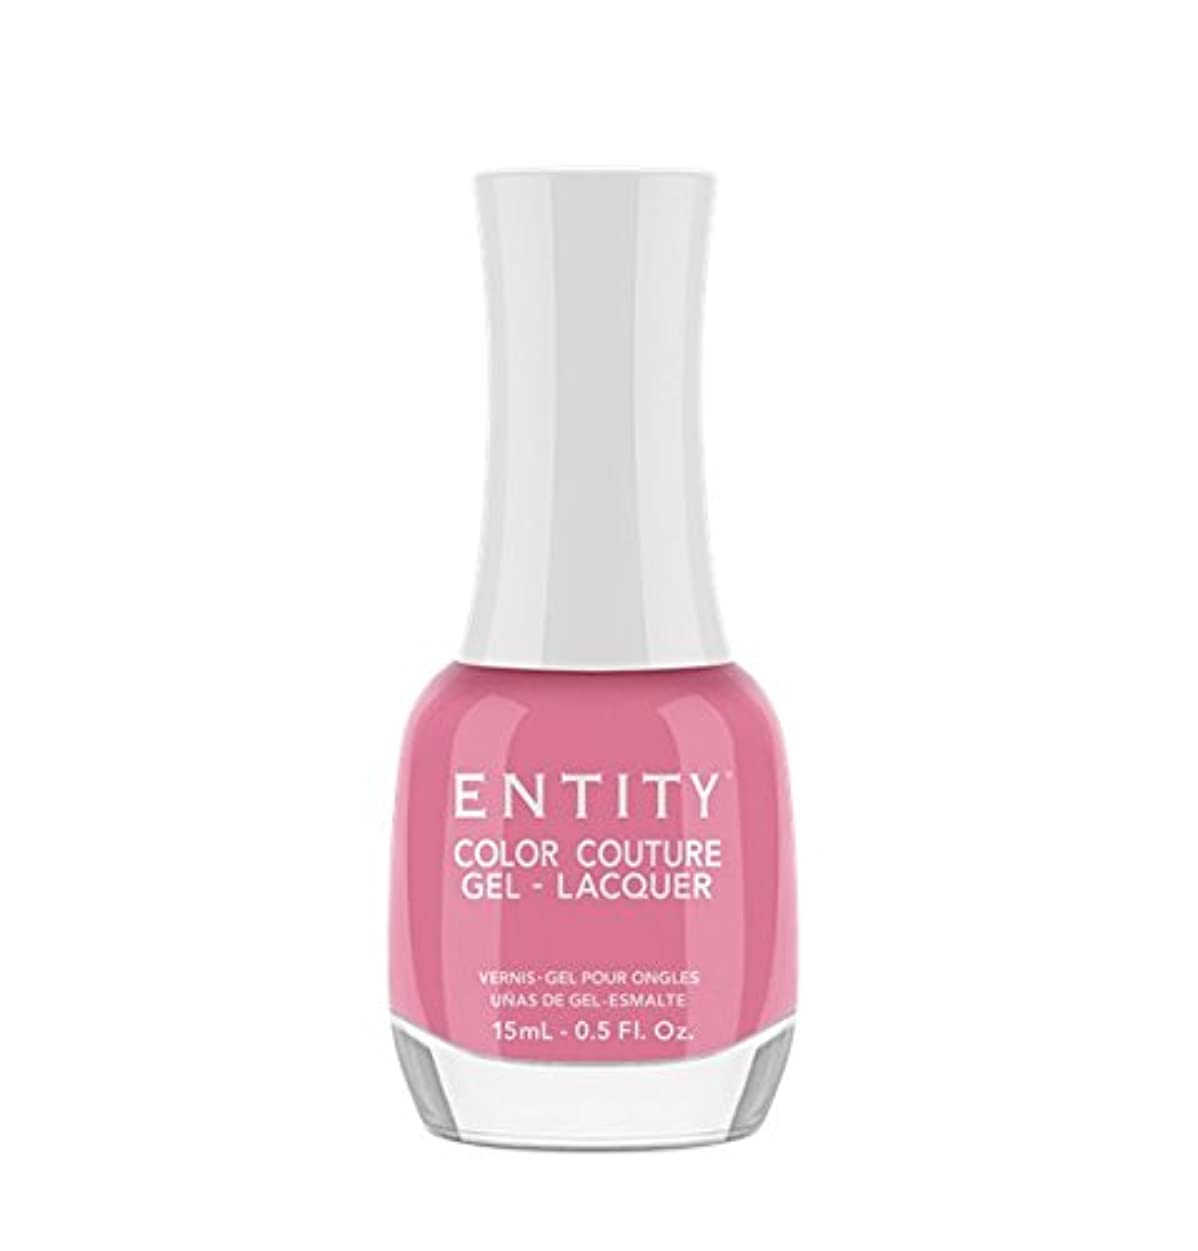 Entity Color Couture Gel-Lacquer - Chic In the City - 15 ml/0.5 oz